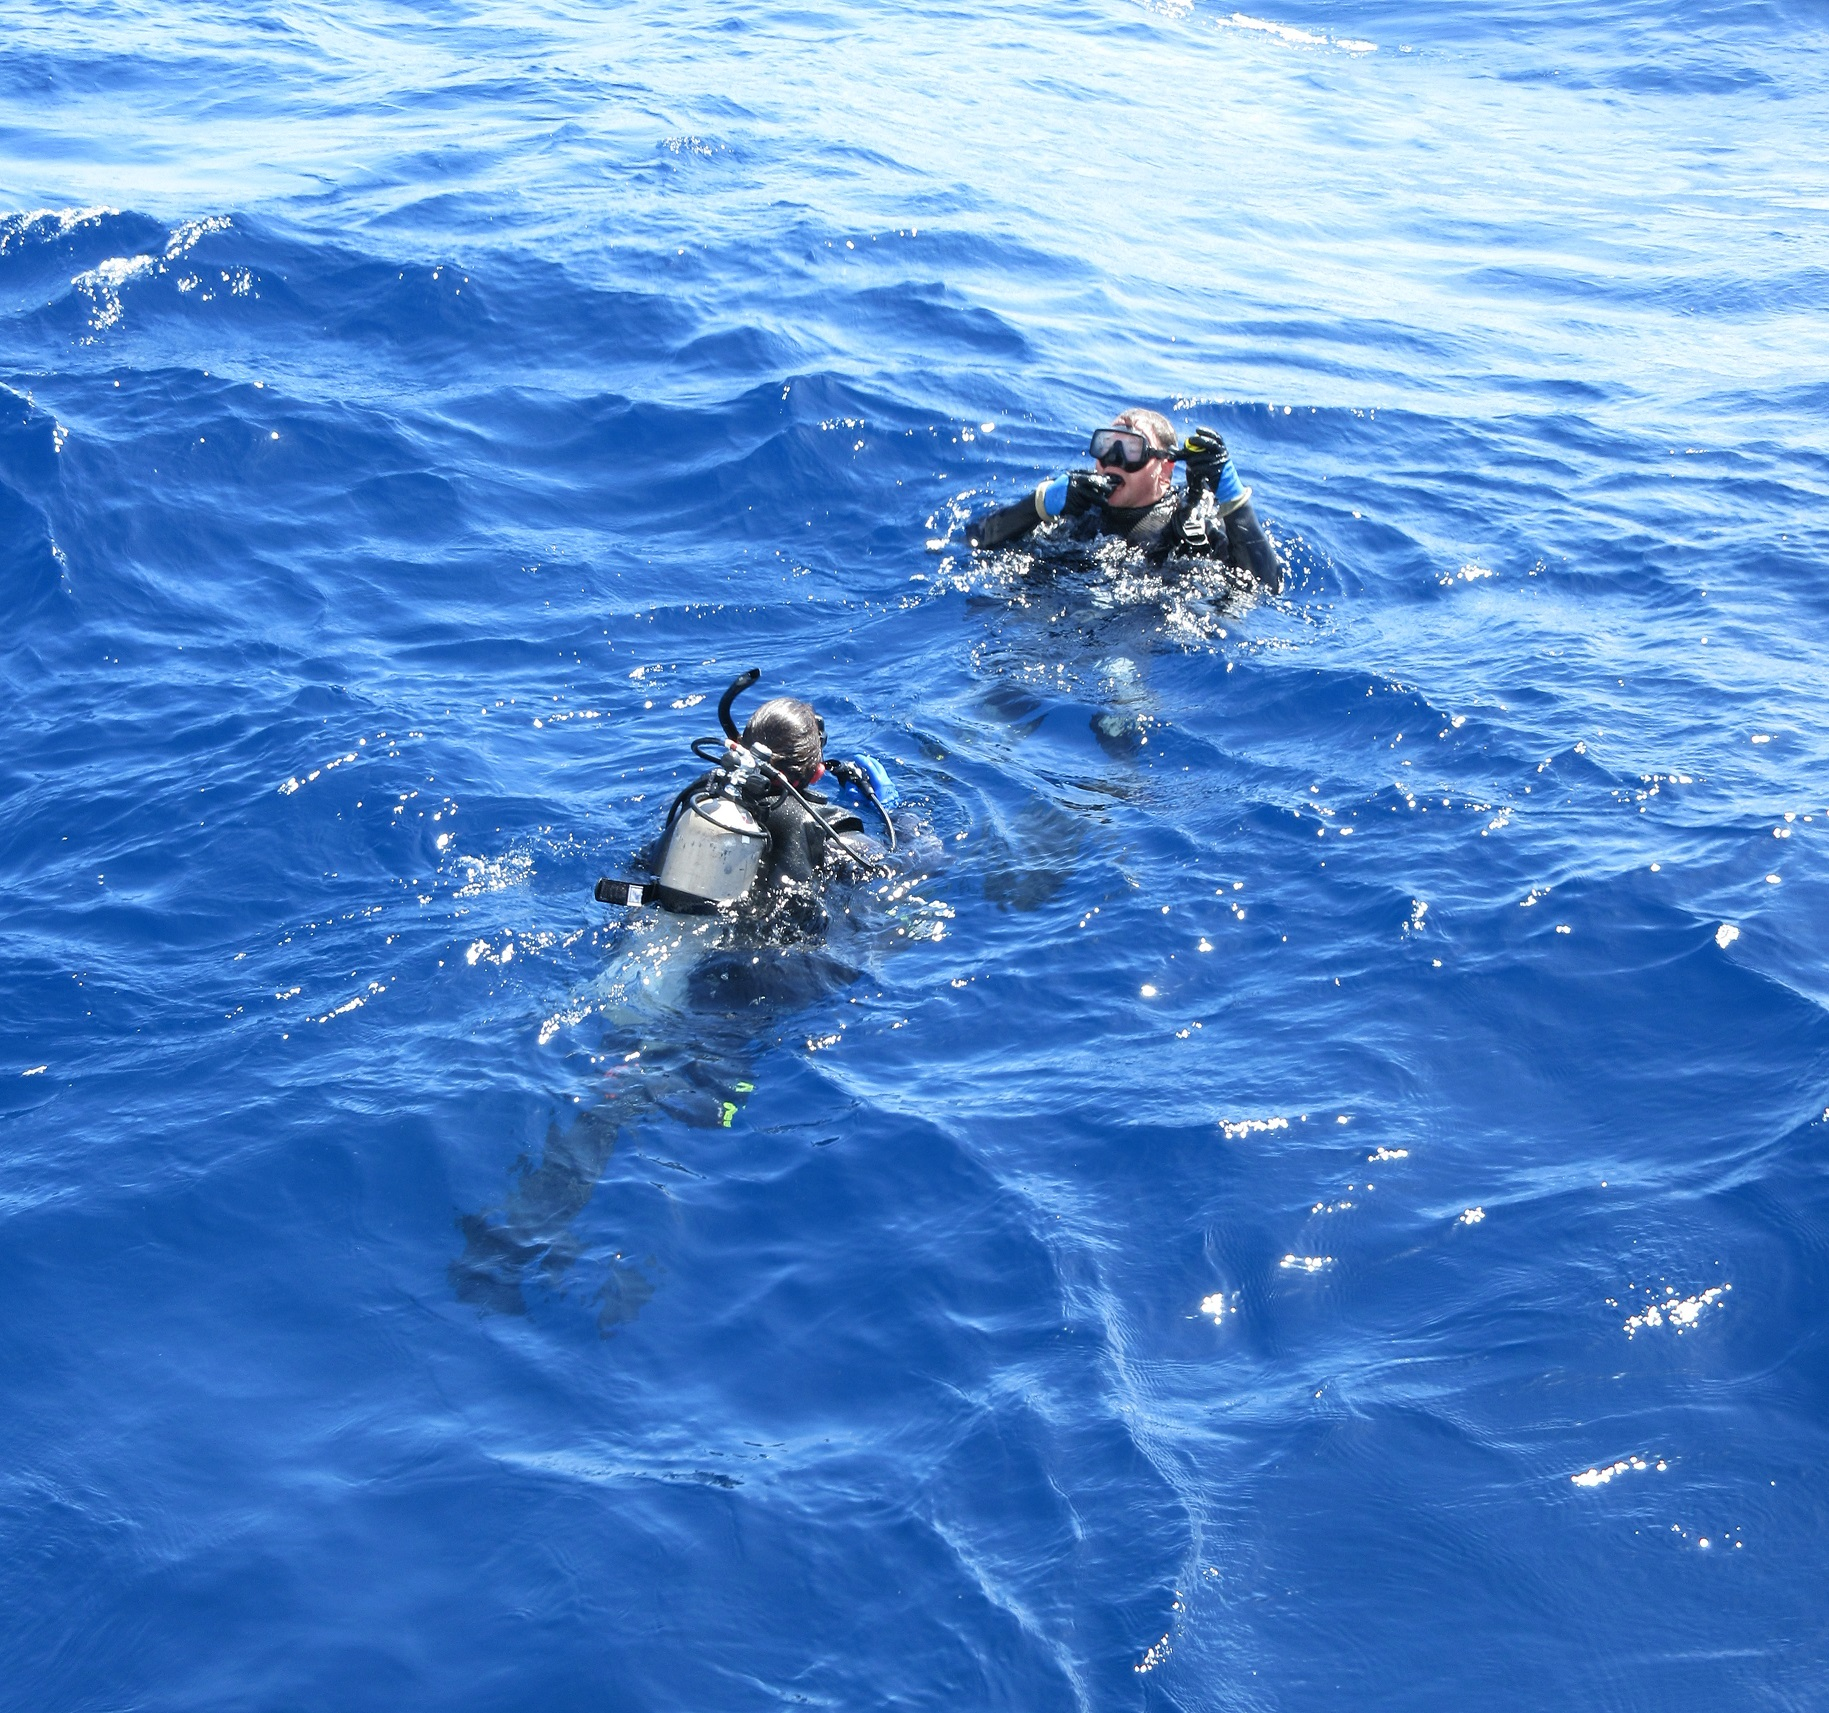 Divers at the surface of the water, preparing to dive.